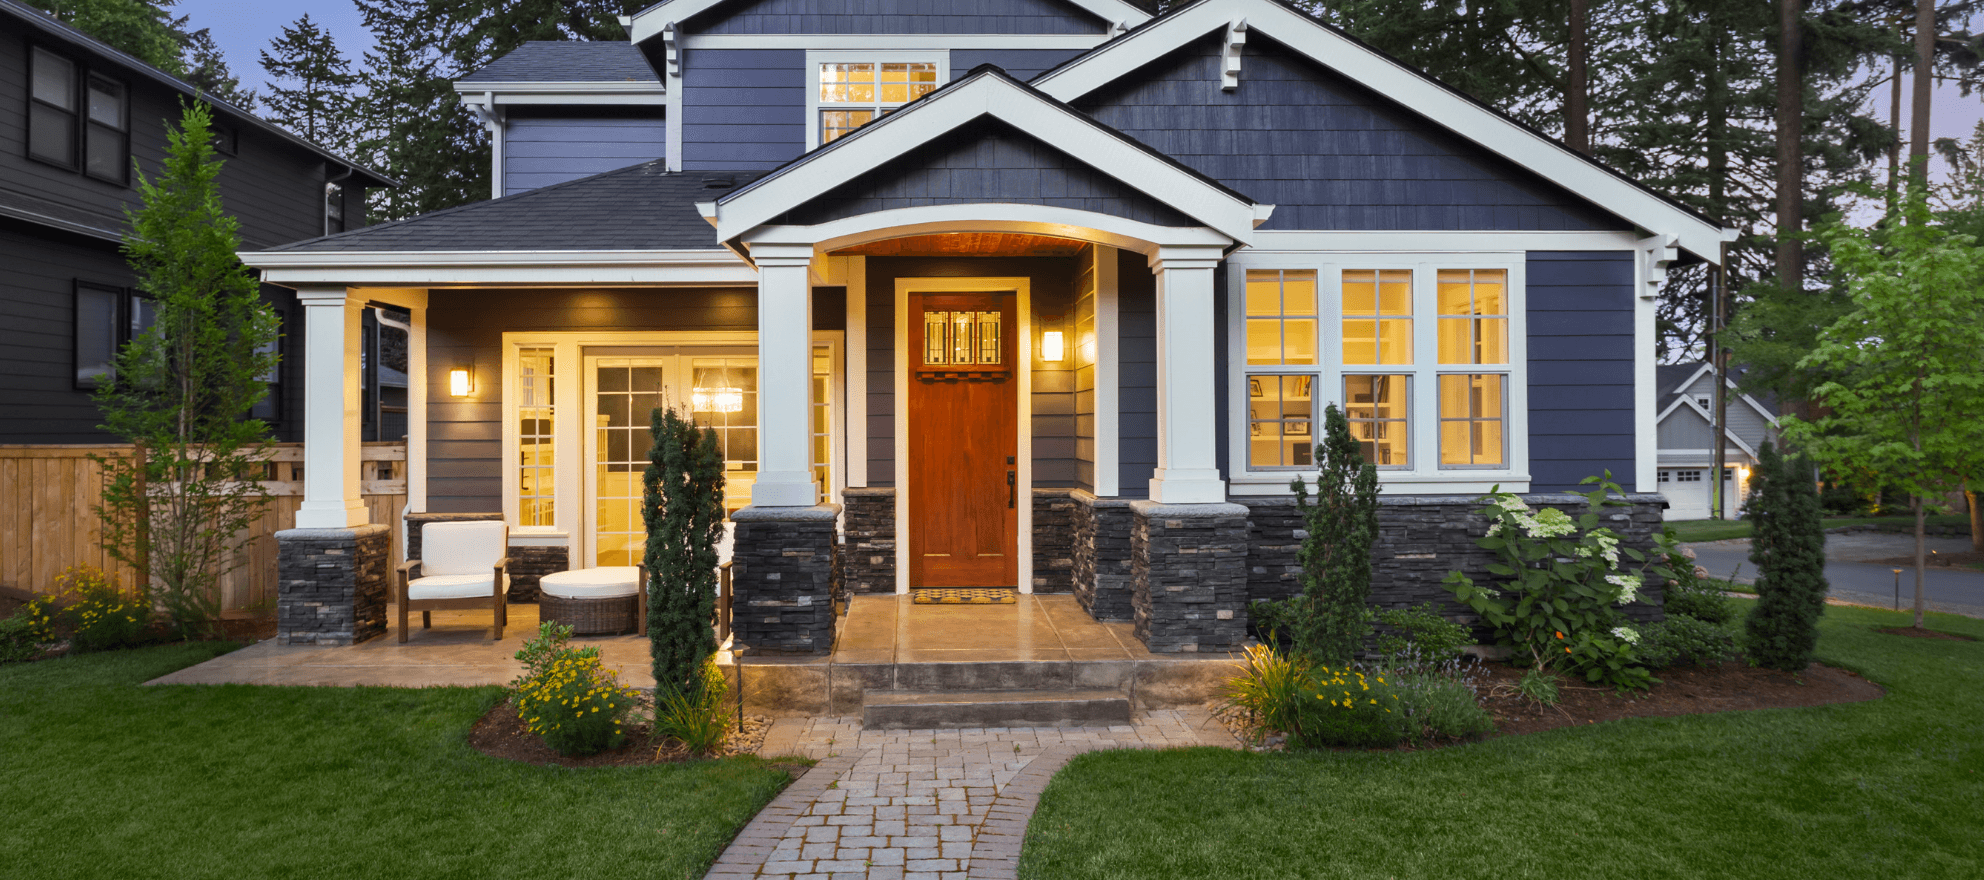 house view from the front with curb appeal lighting